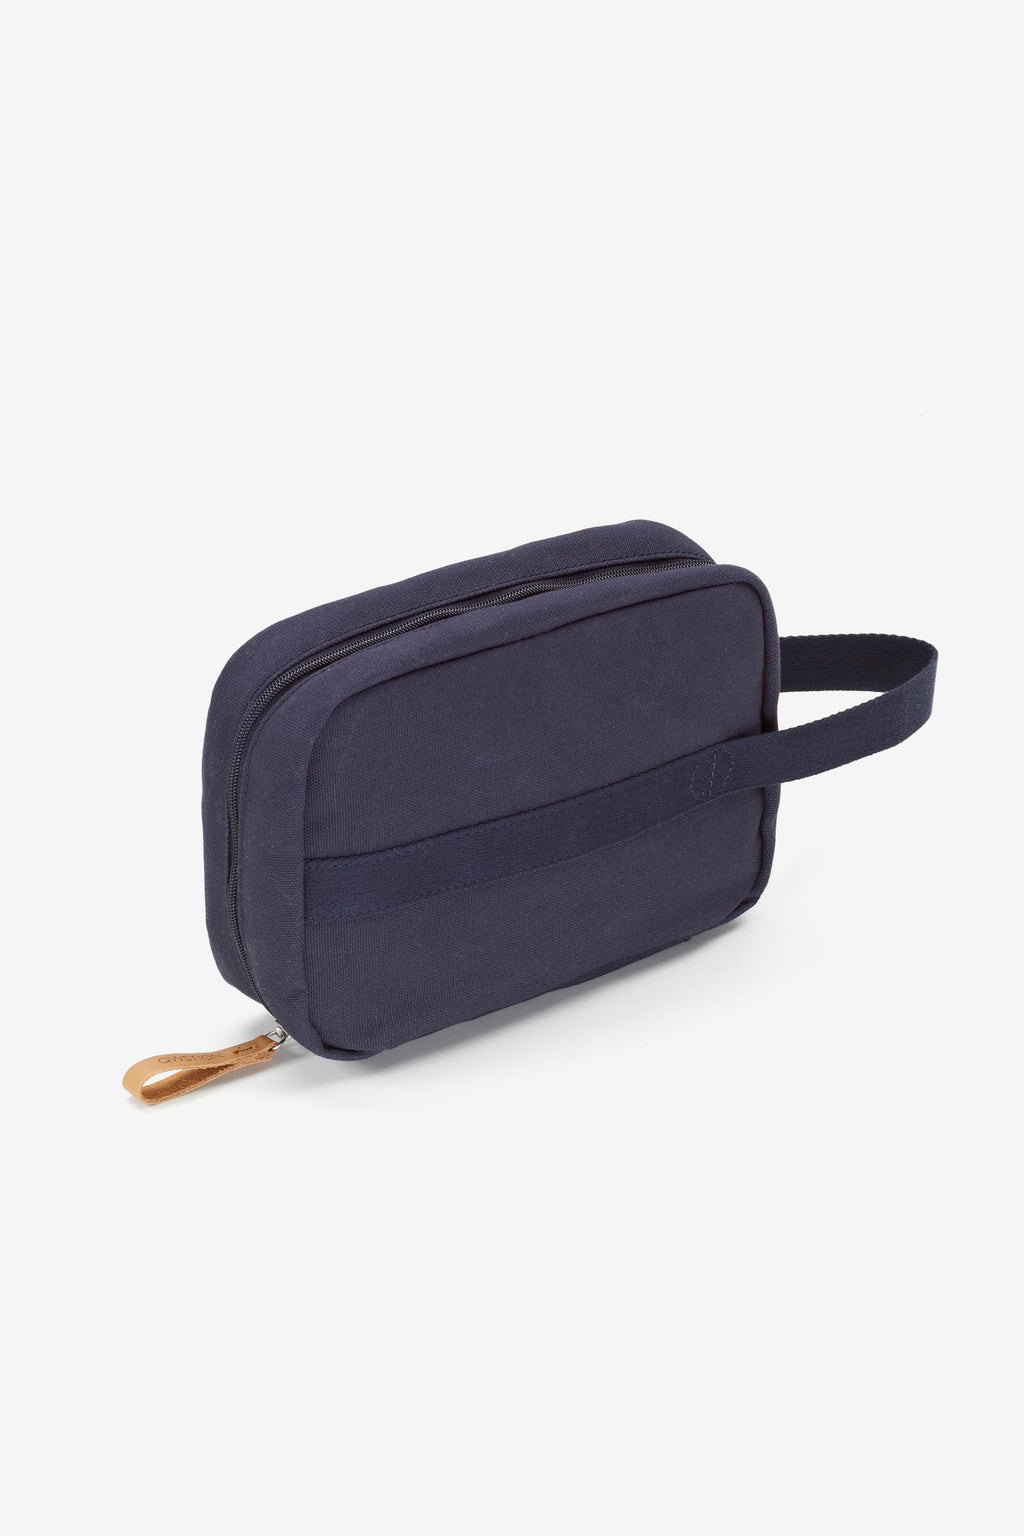 Toiletry Kit Organic Navy, Bags, QWSTION - Six and Sons